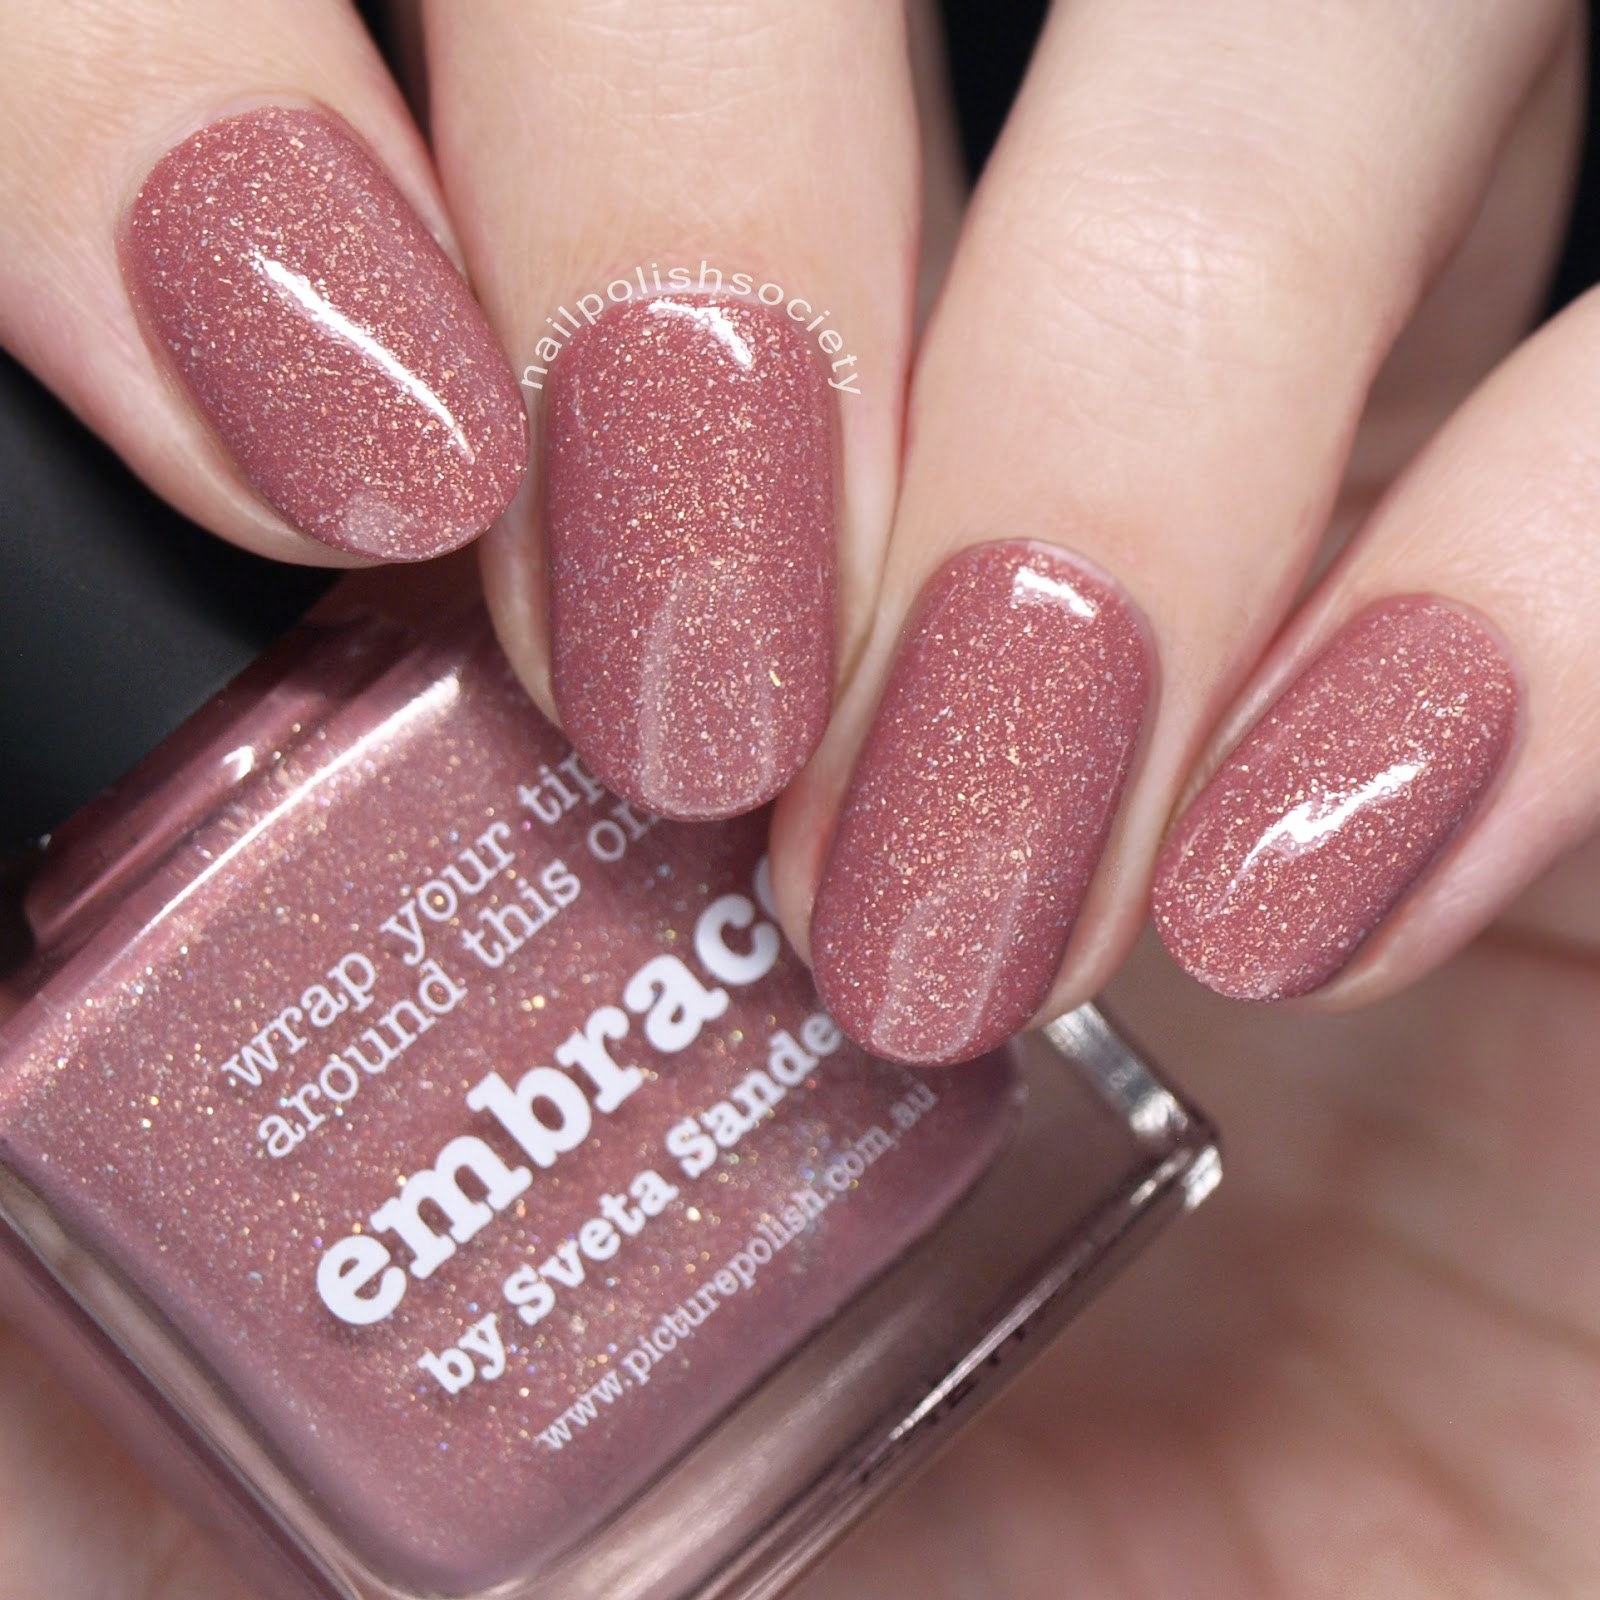 lacquer the nailberry zoom collection nail romance light oxygenated nails polish into pink